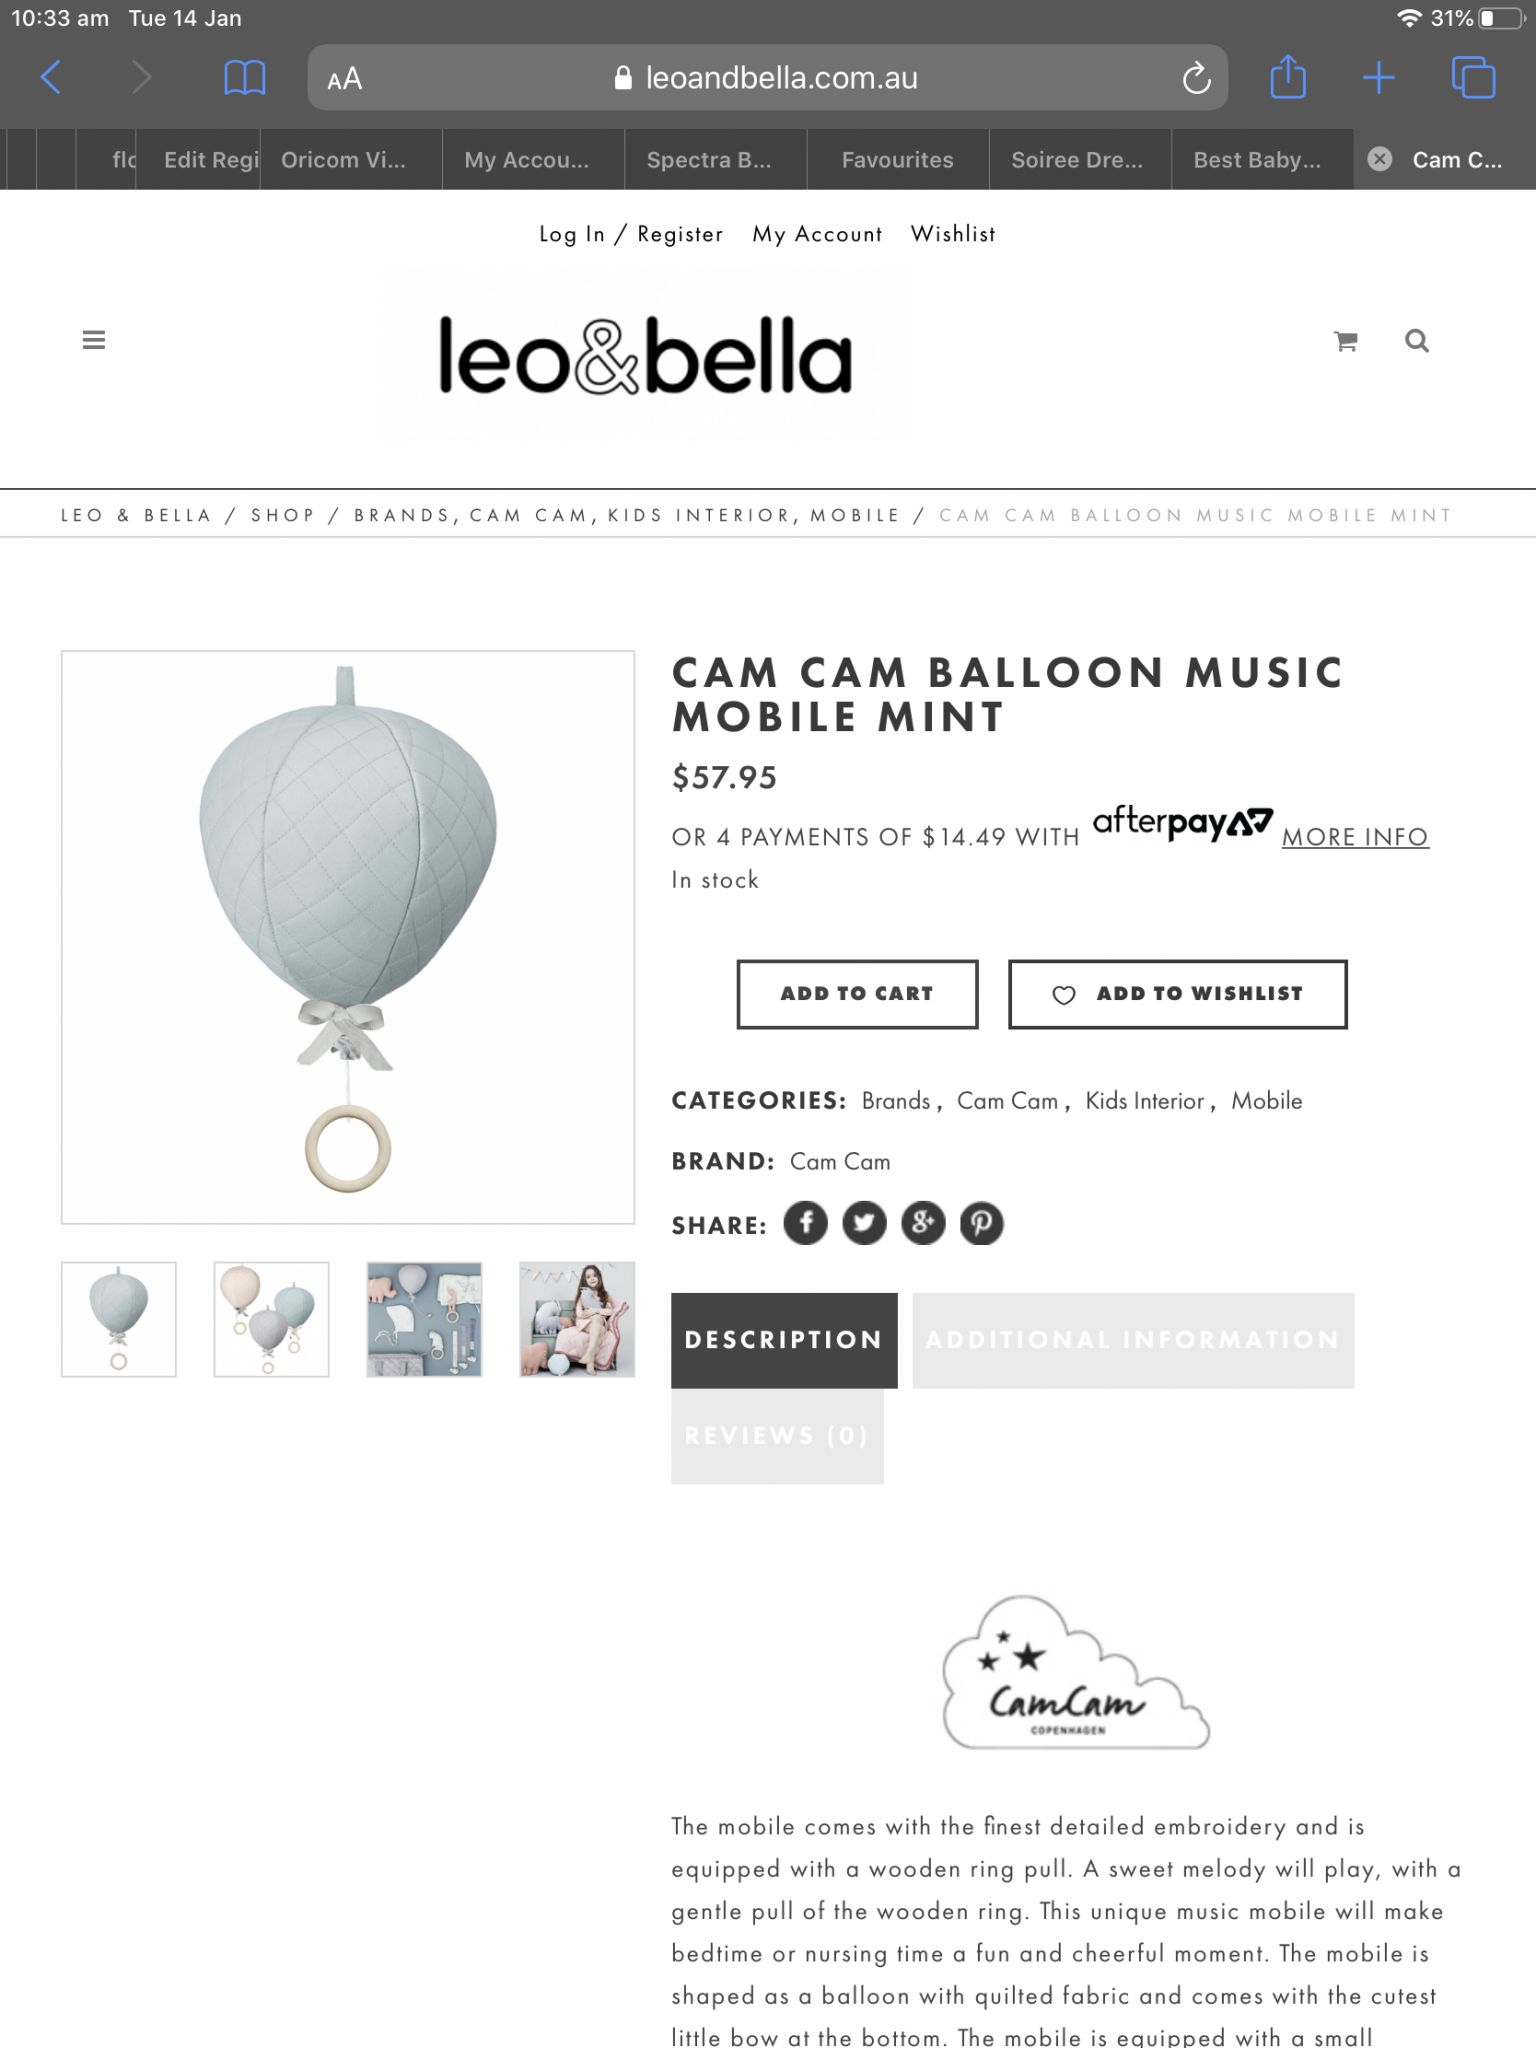 Balloon Music Mobile Mint